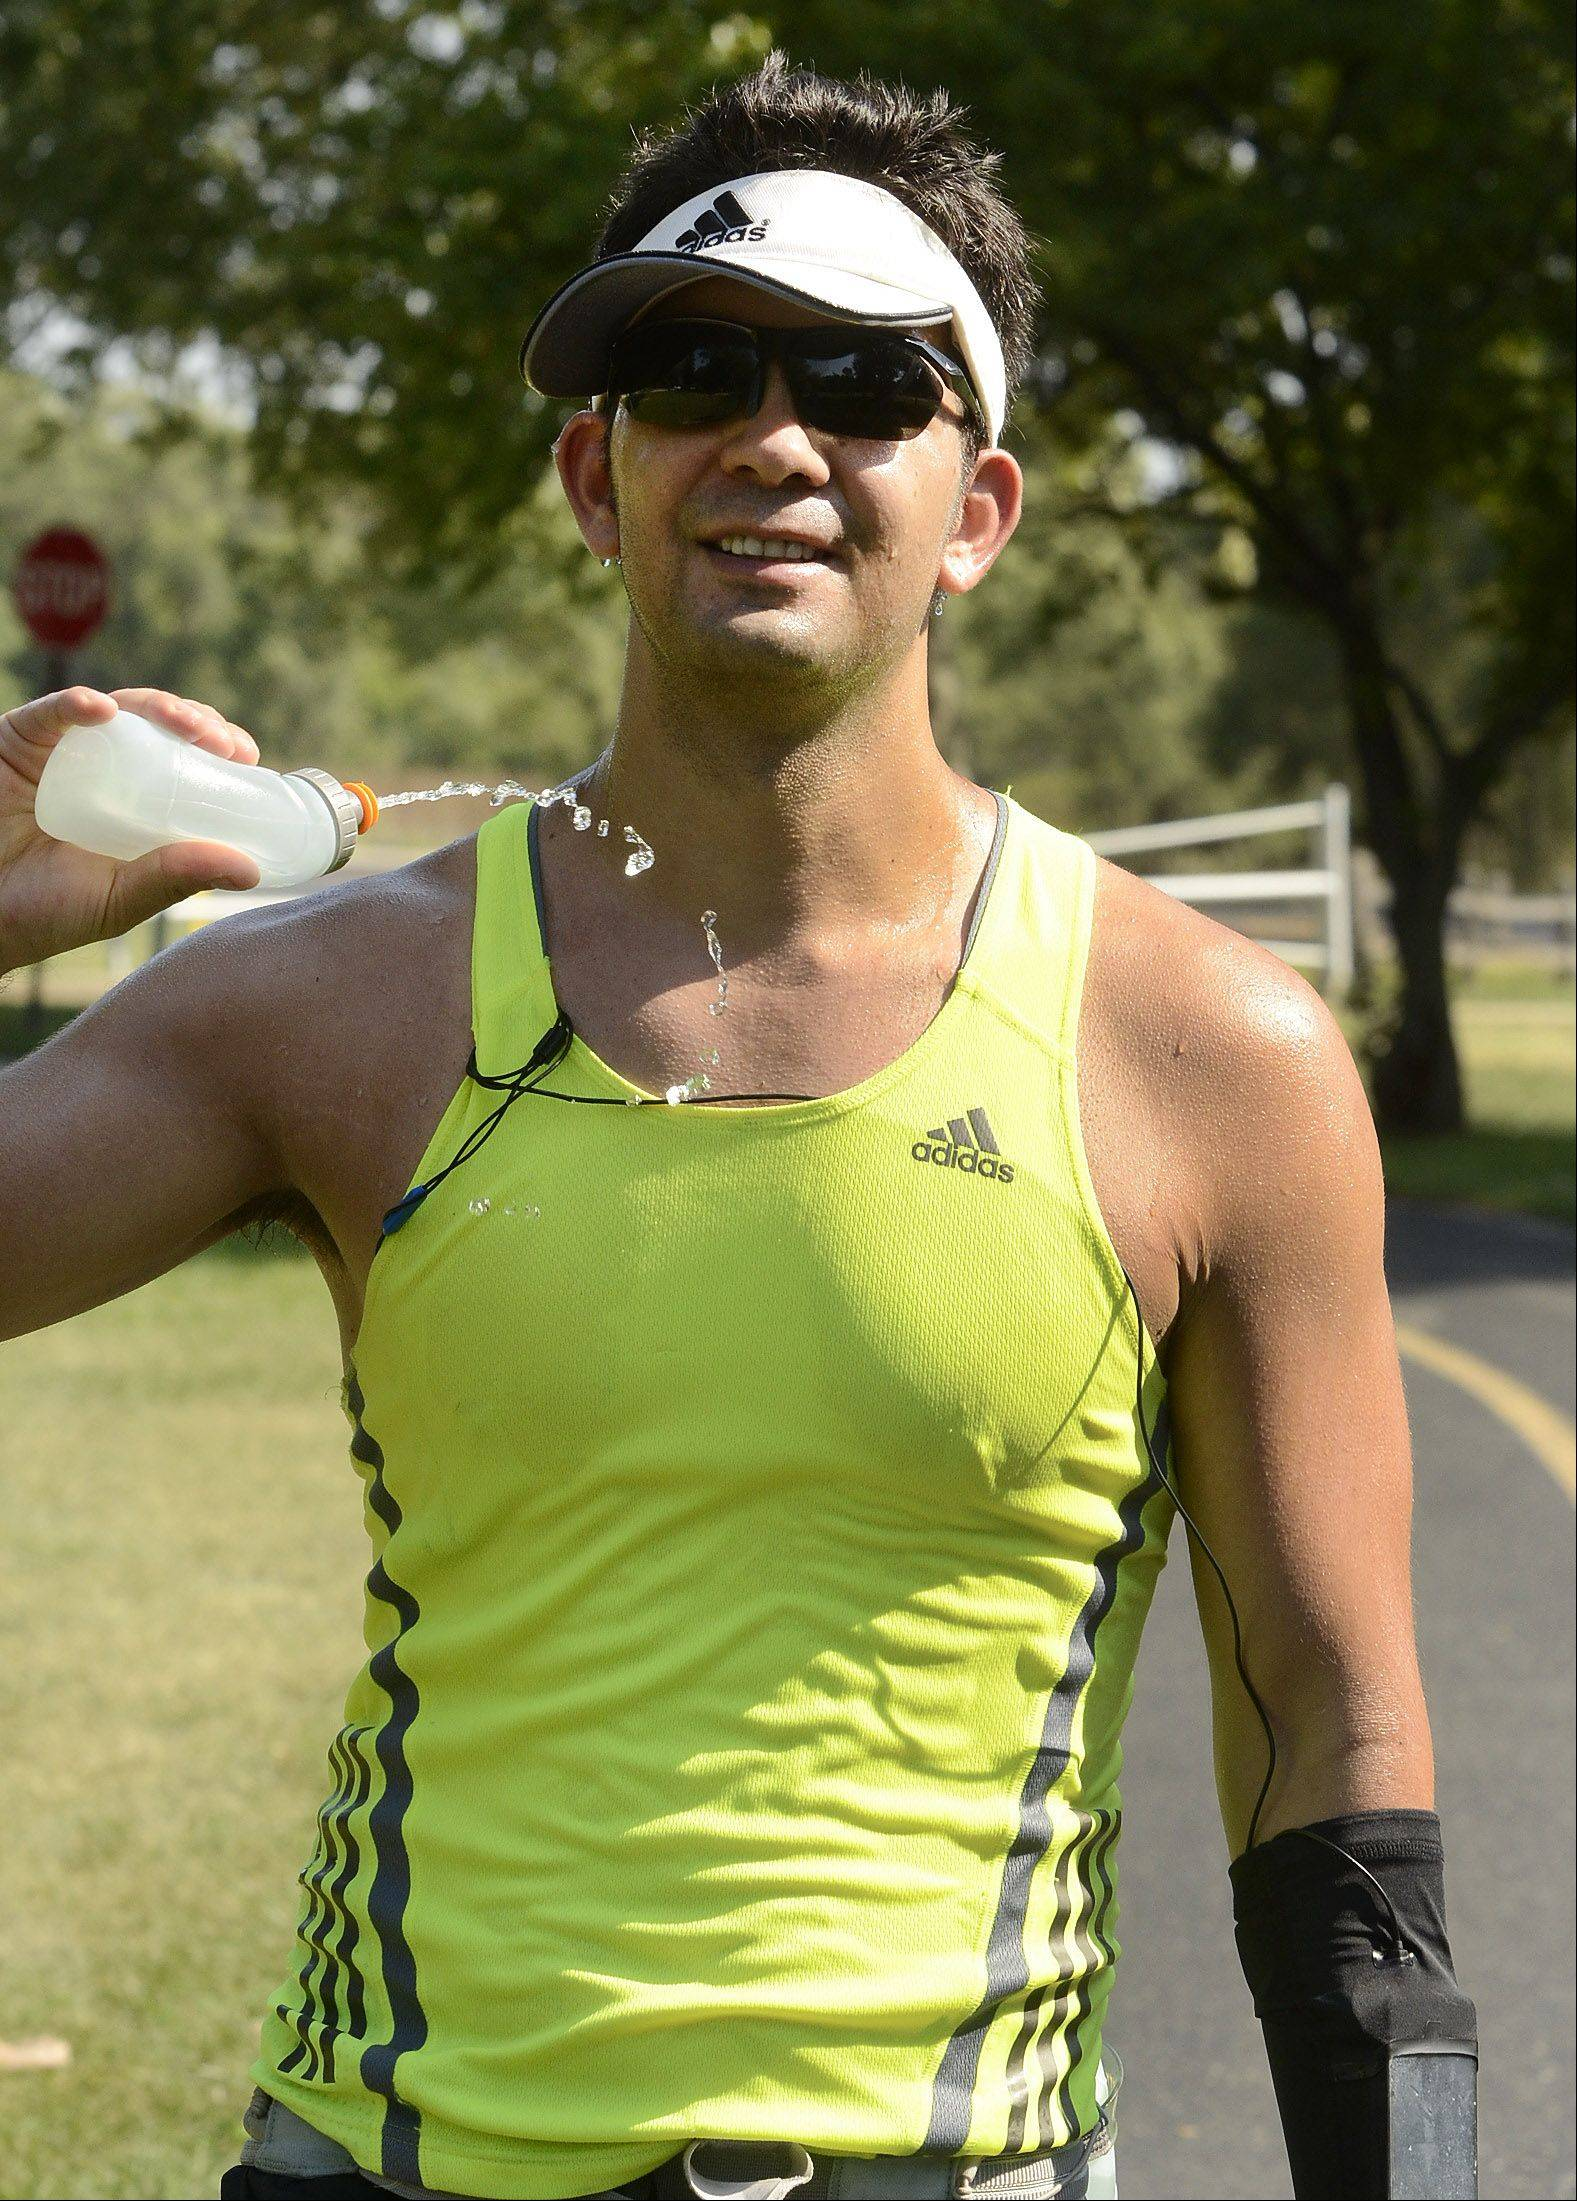 Despite record-tying heat, Michael Rosales of Hoffman Estates took to the paths Tuesday in Busse Woods to train for the upcoming Chicago Marathon. He runs carrying plenty of water and hydrates constantly in this late summer heat.